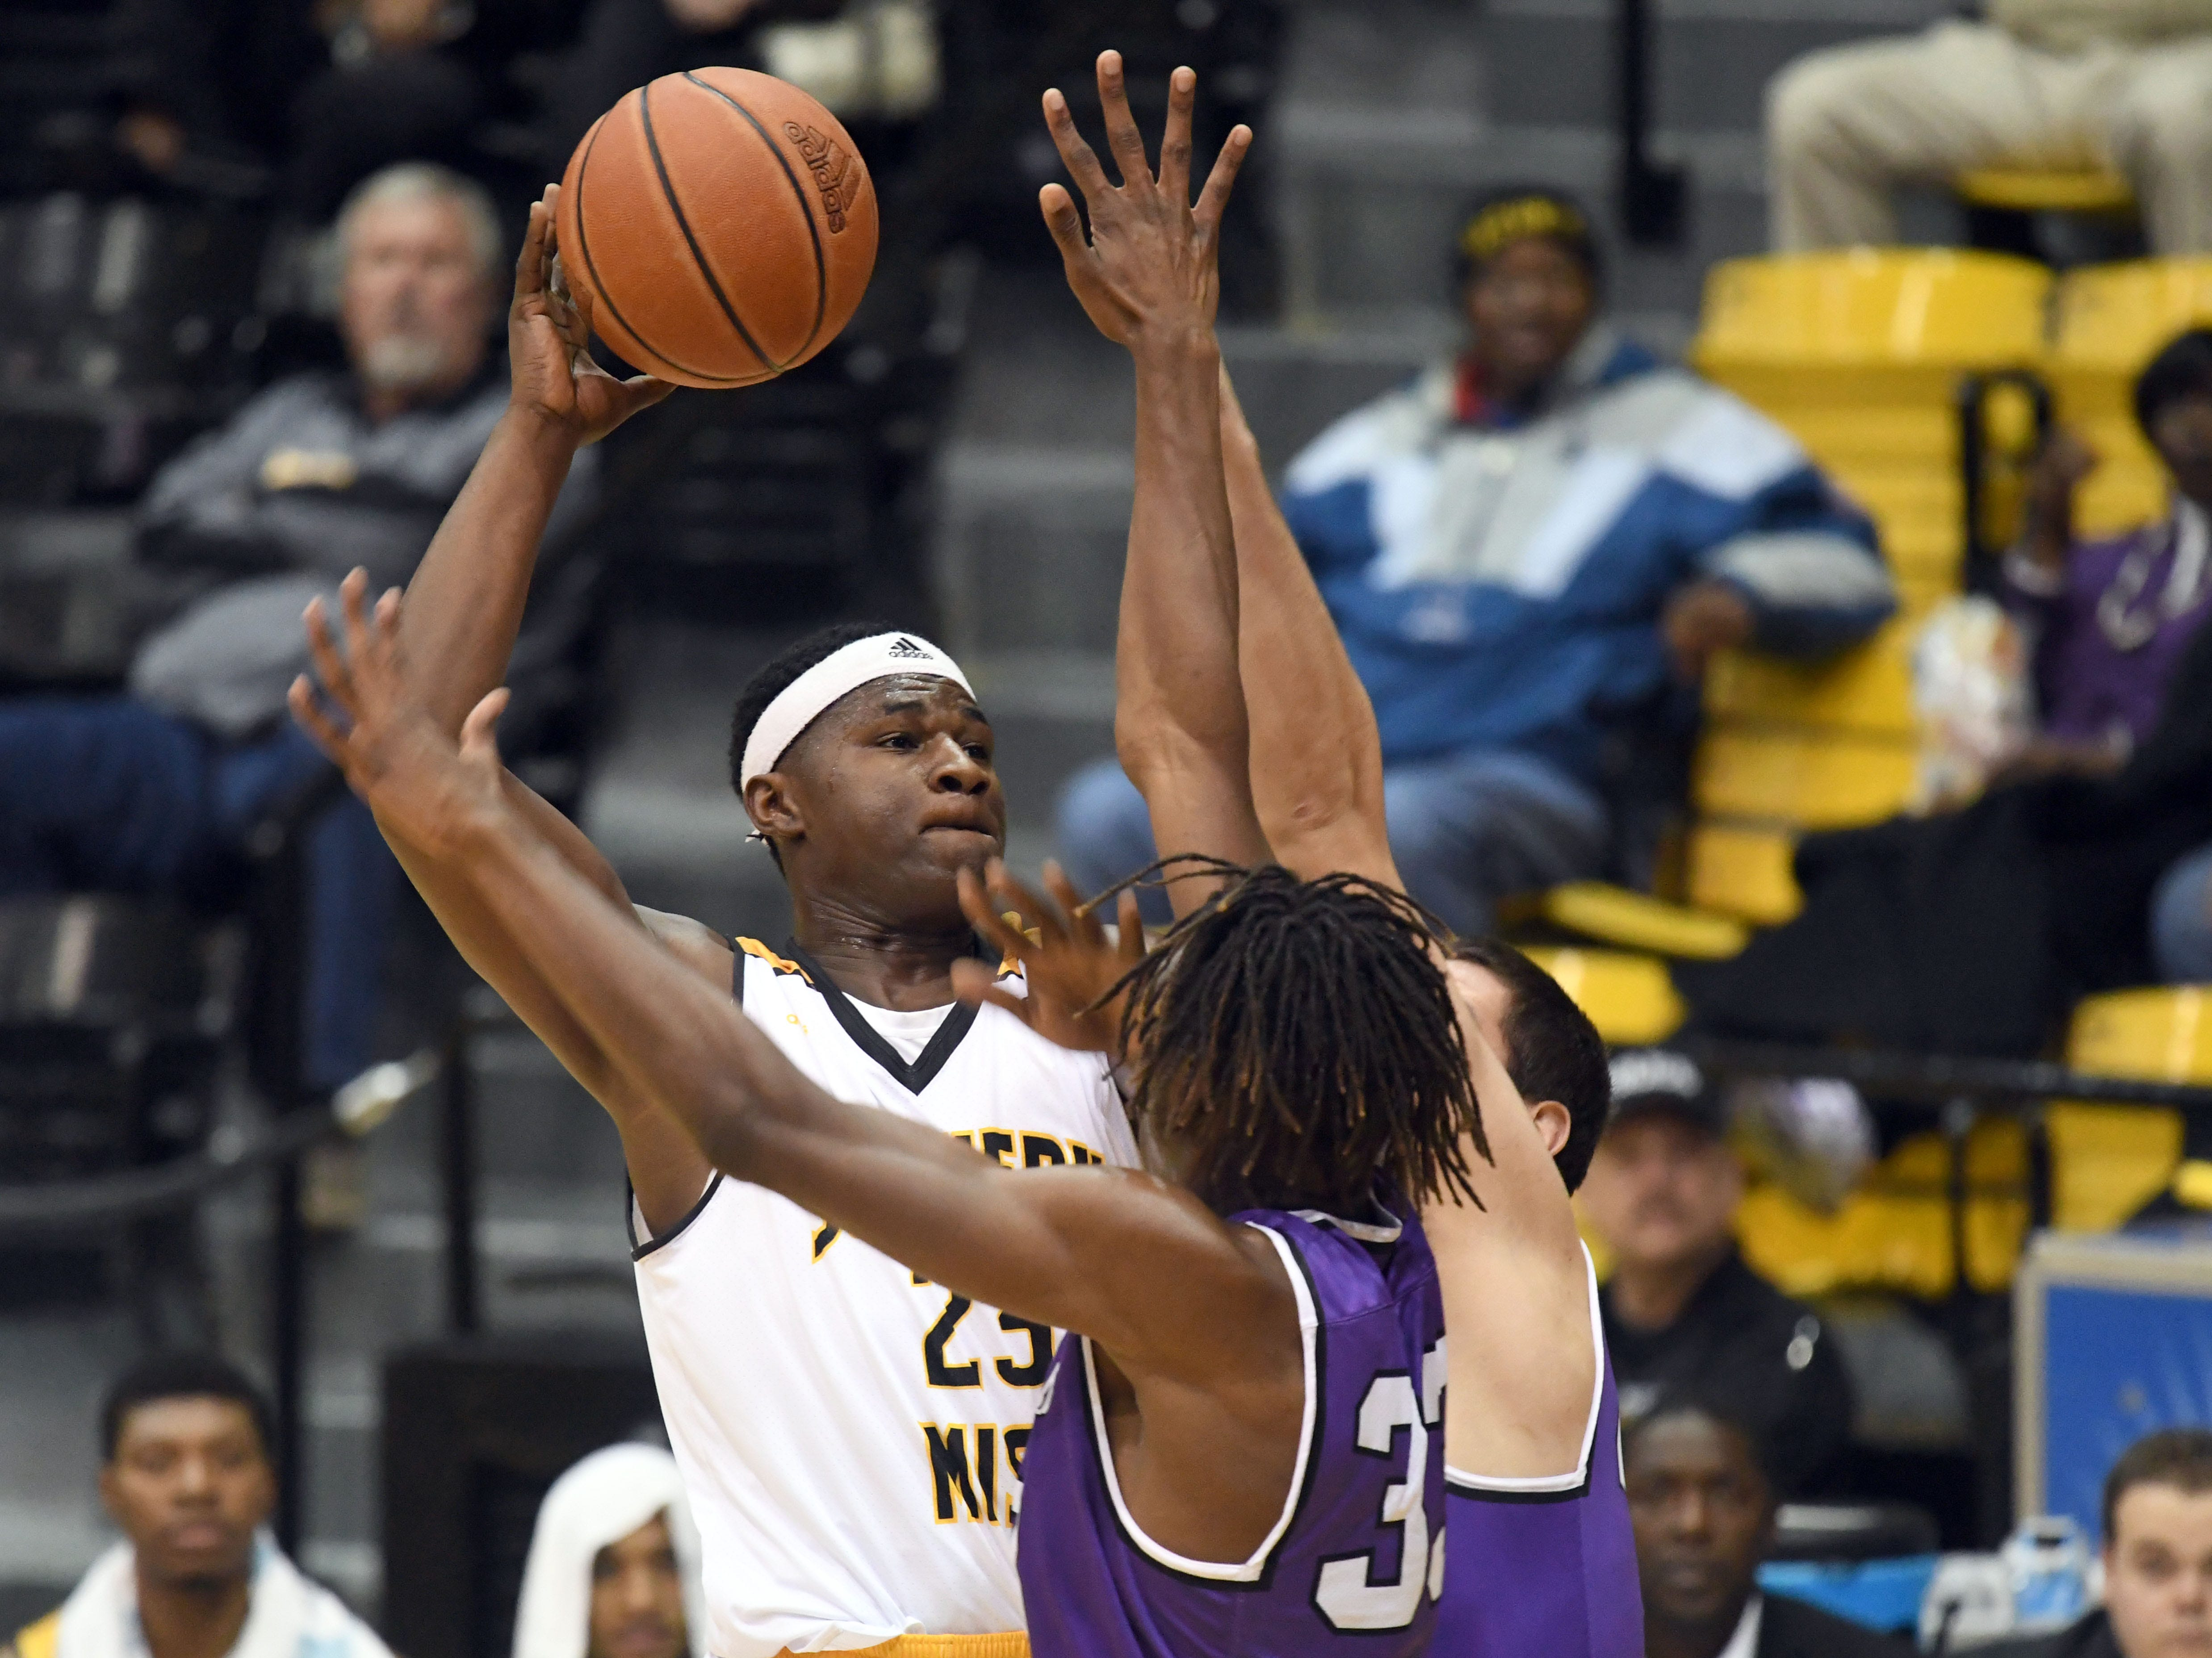 Southern Miss forward Ladarius Marshall shoots over a defender in a game against Millsaps in Reed Green Coliseum on Tuesday, December 11, 2018.